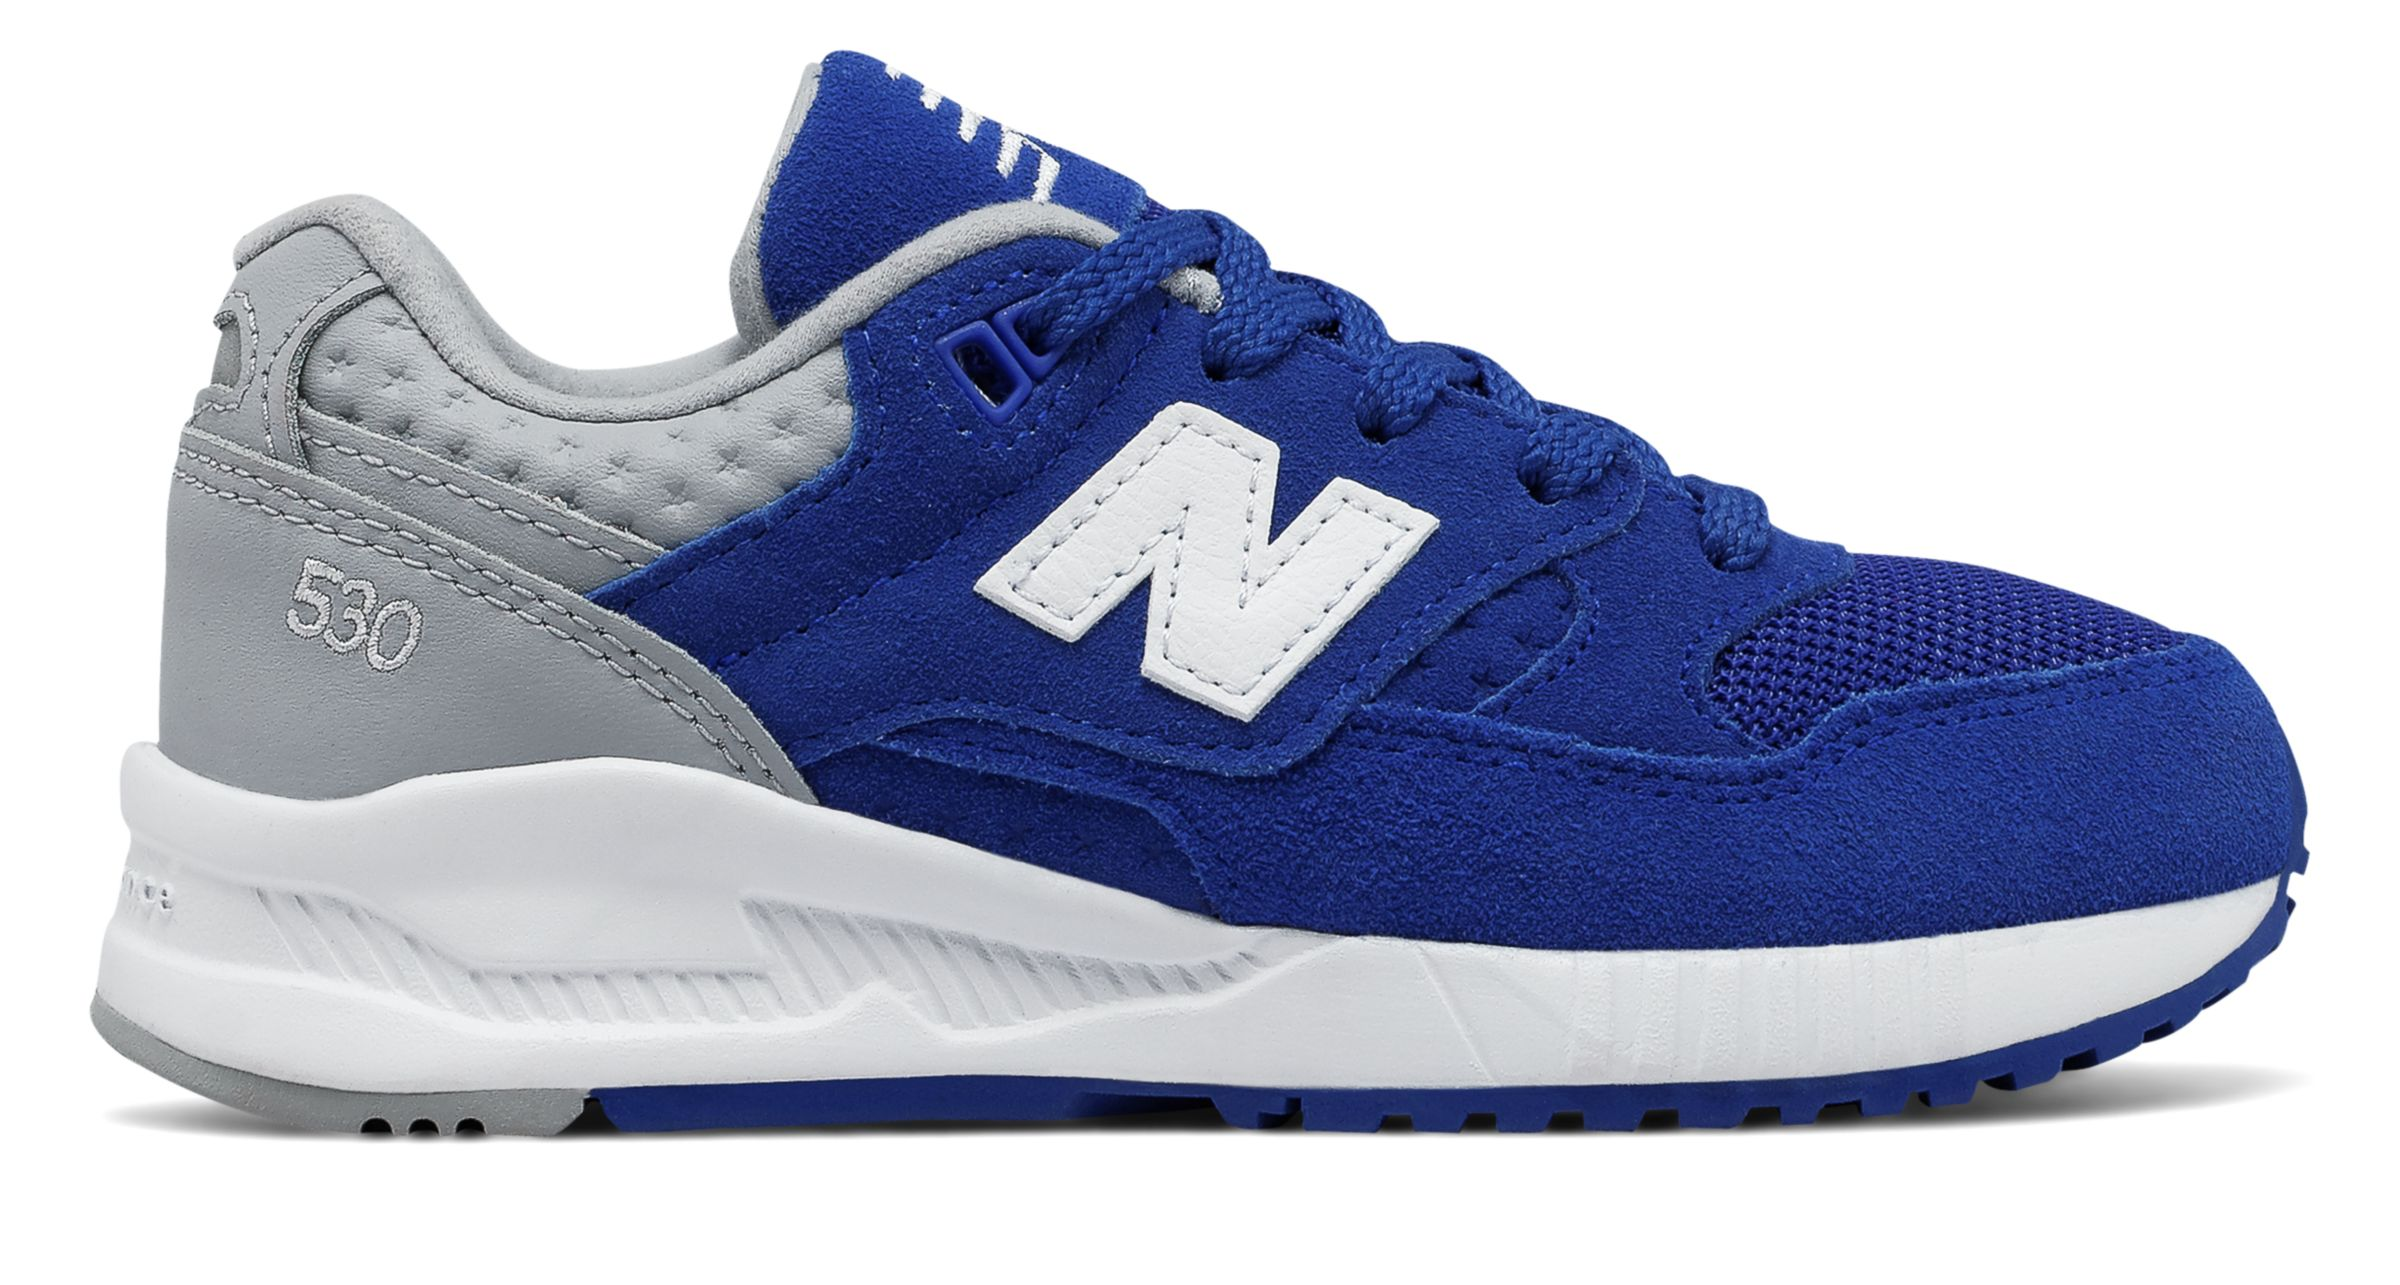 NB 530 New Balance, Blue with Grey